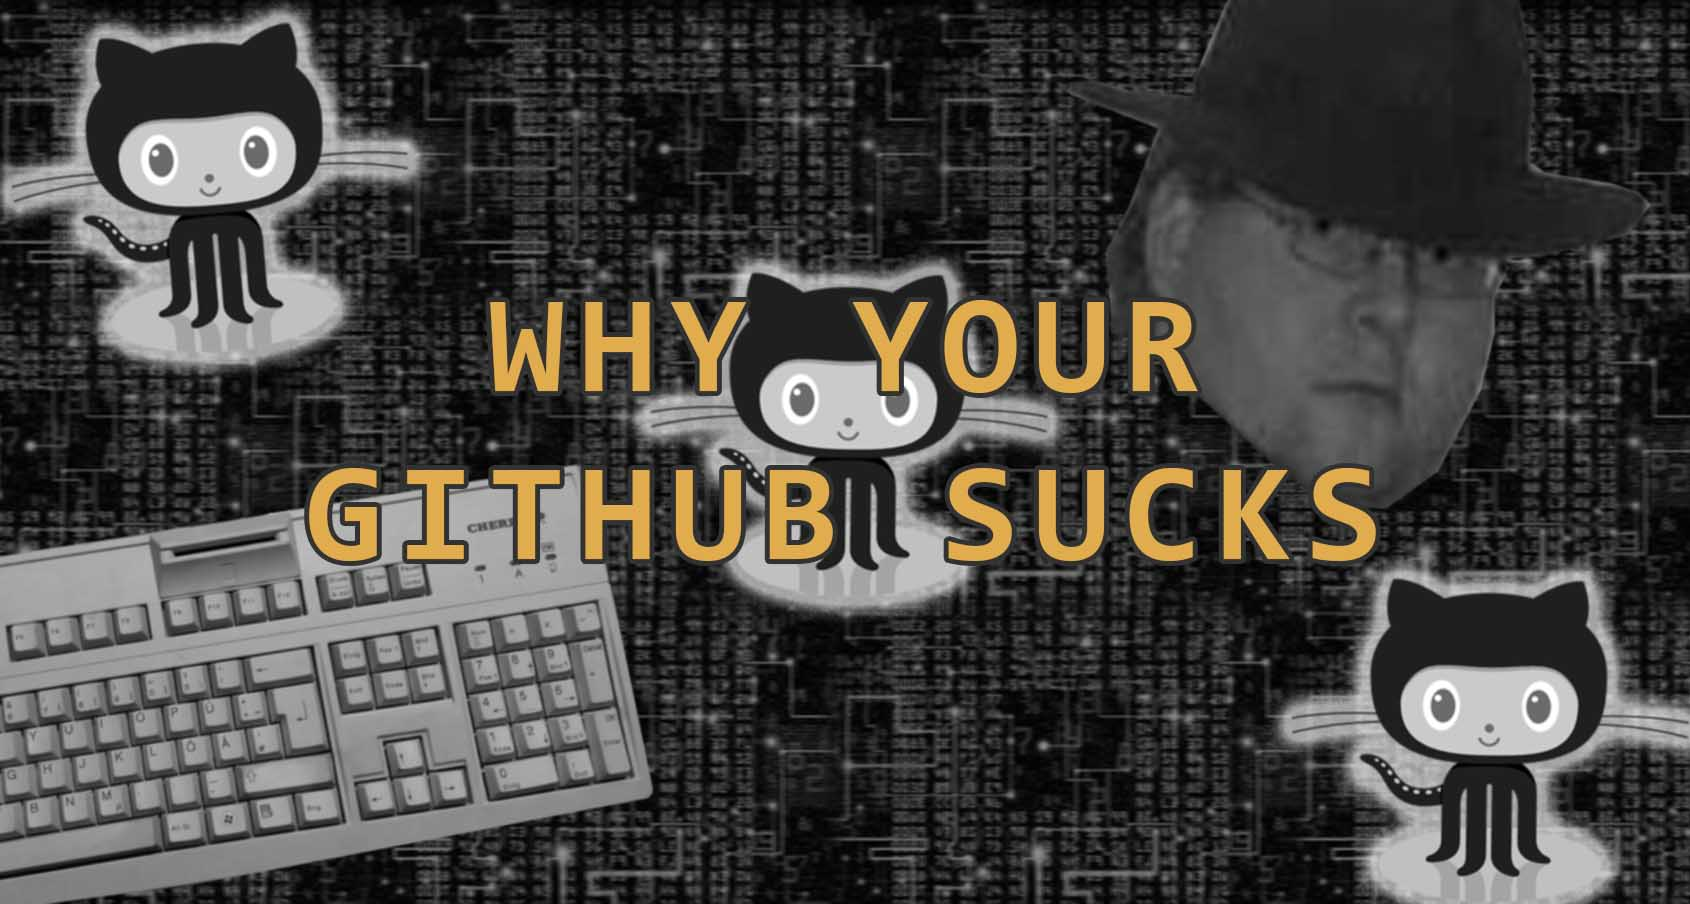 Why your GitHub sucks